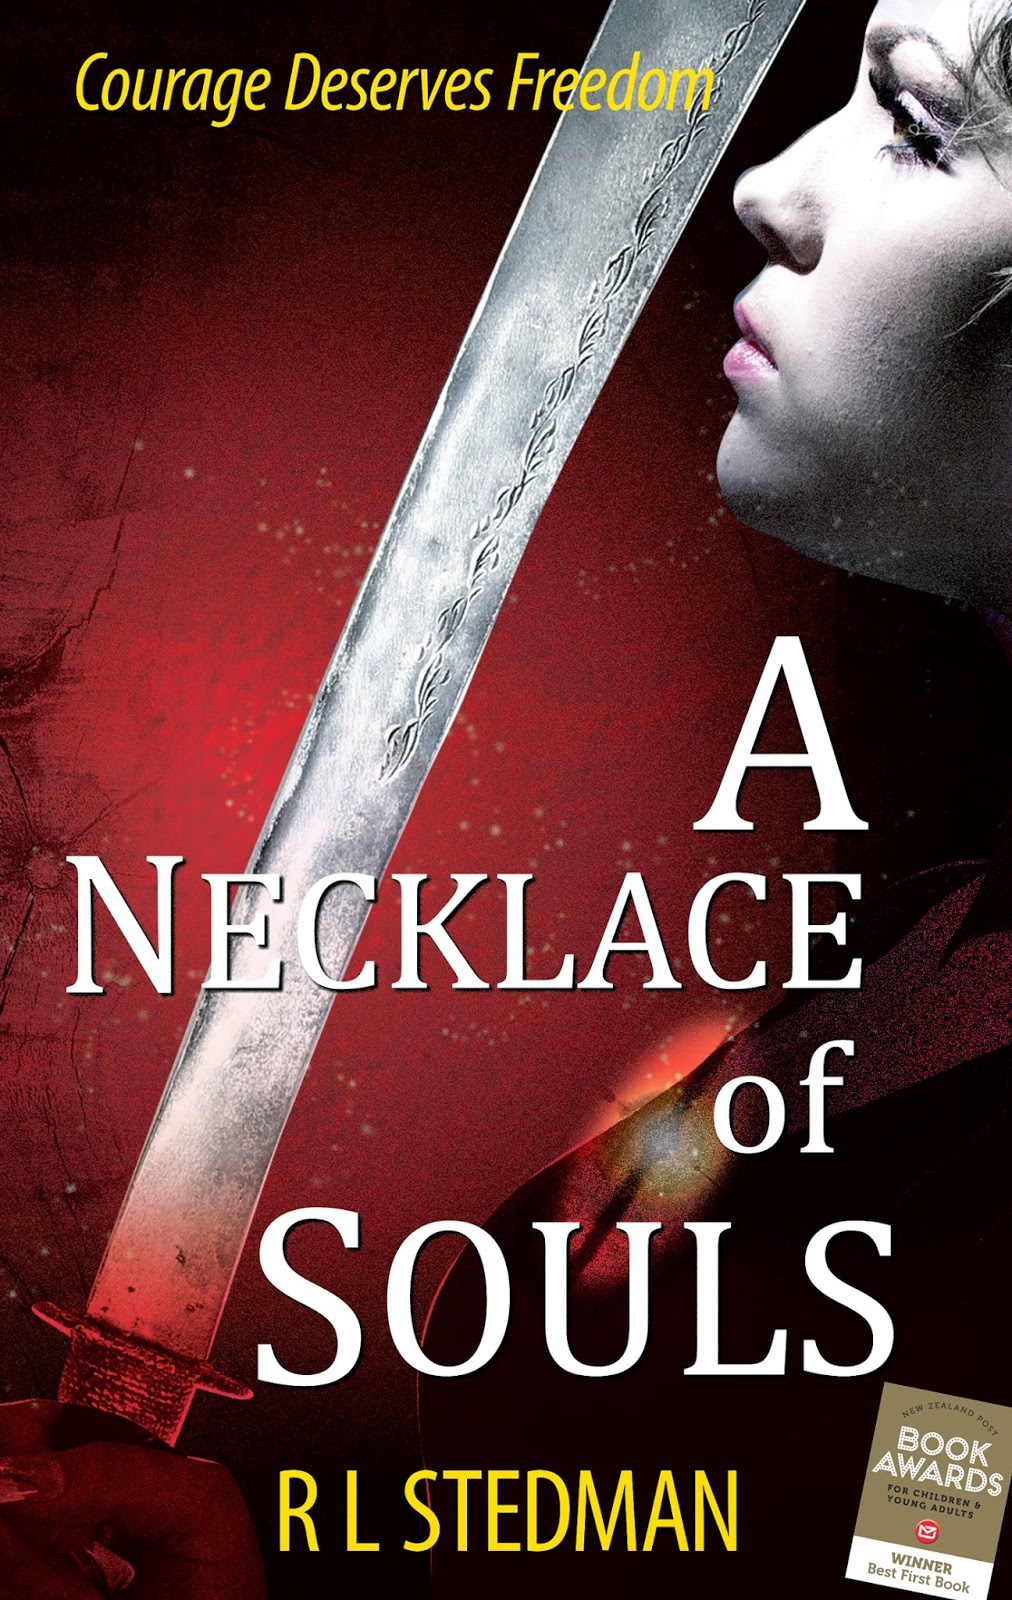 """A Necklace of Souls"" author RL Stedman, Cover designed by Kura Carpenter"